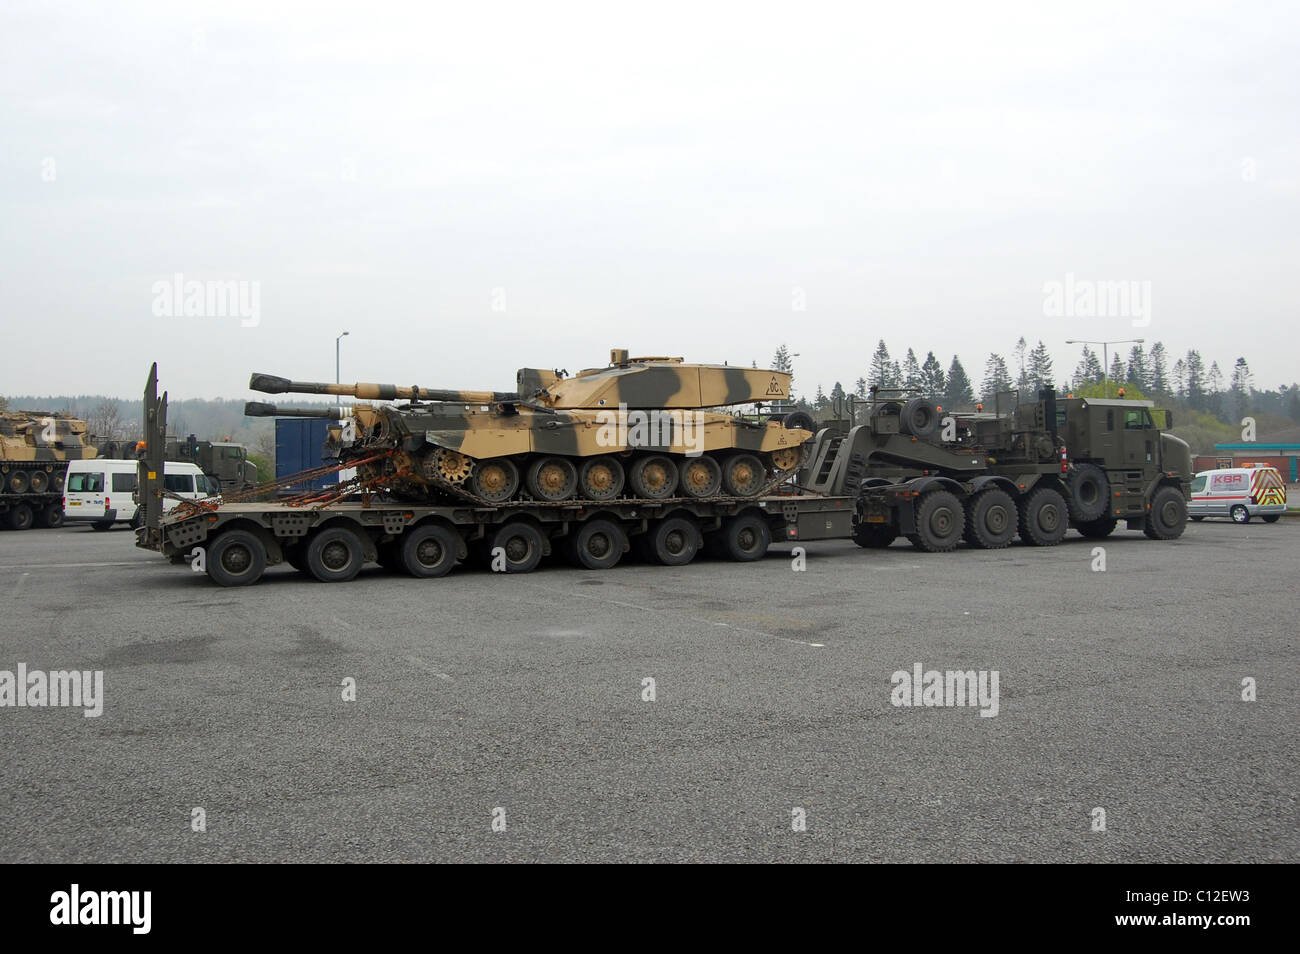 Military Transport Tanks